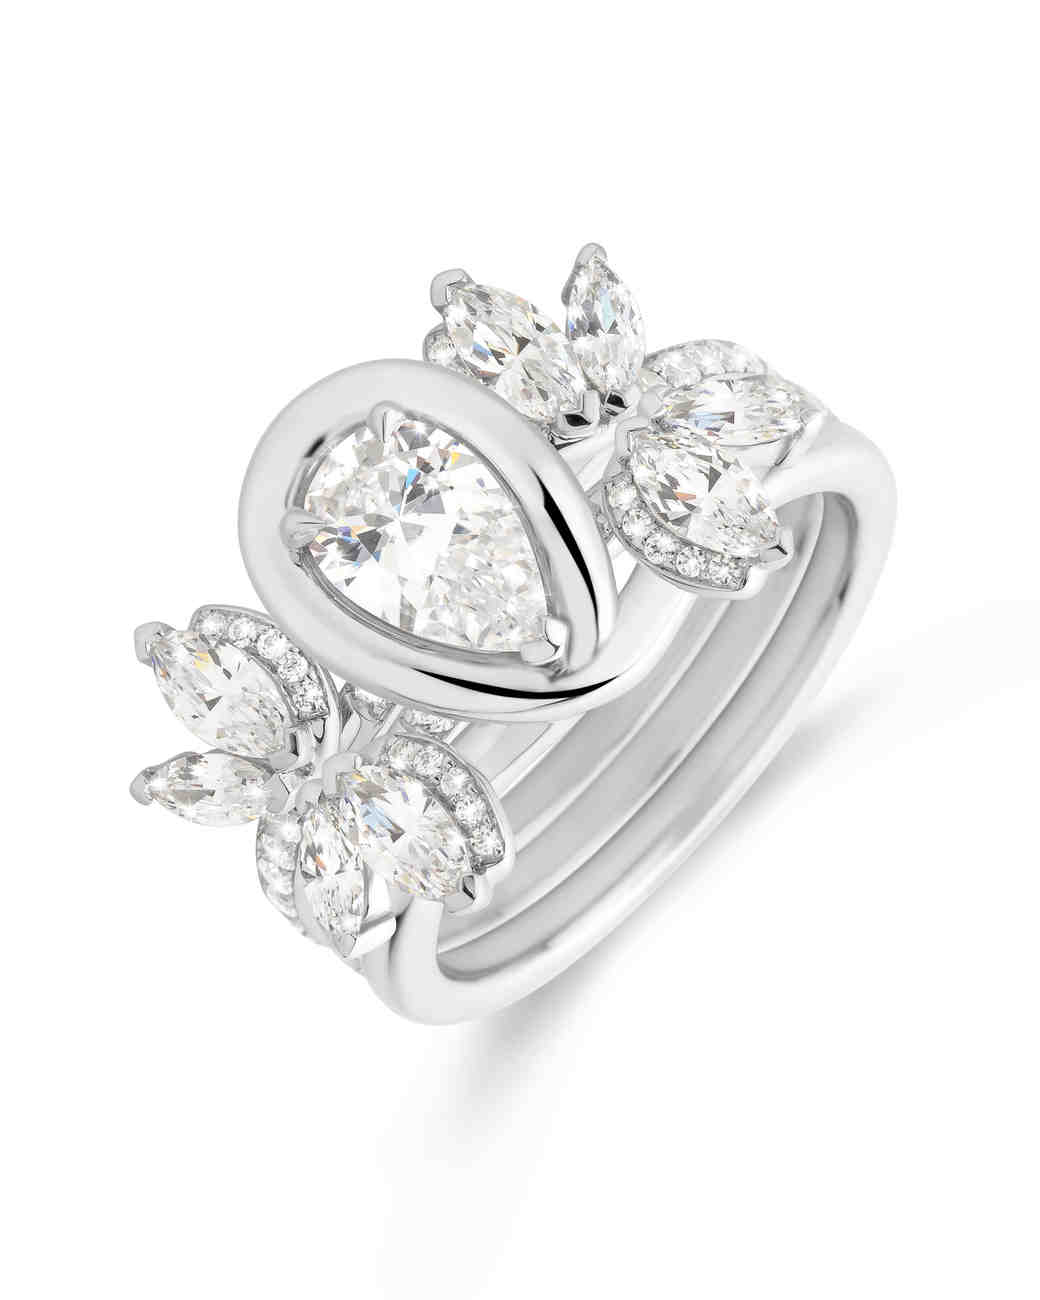 21 Best New Engagement Ring Designers to Know Now